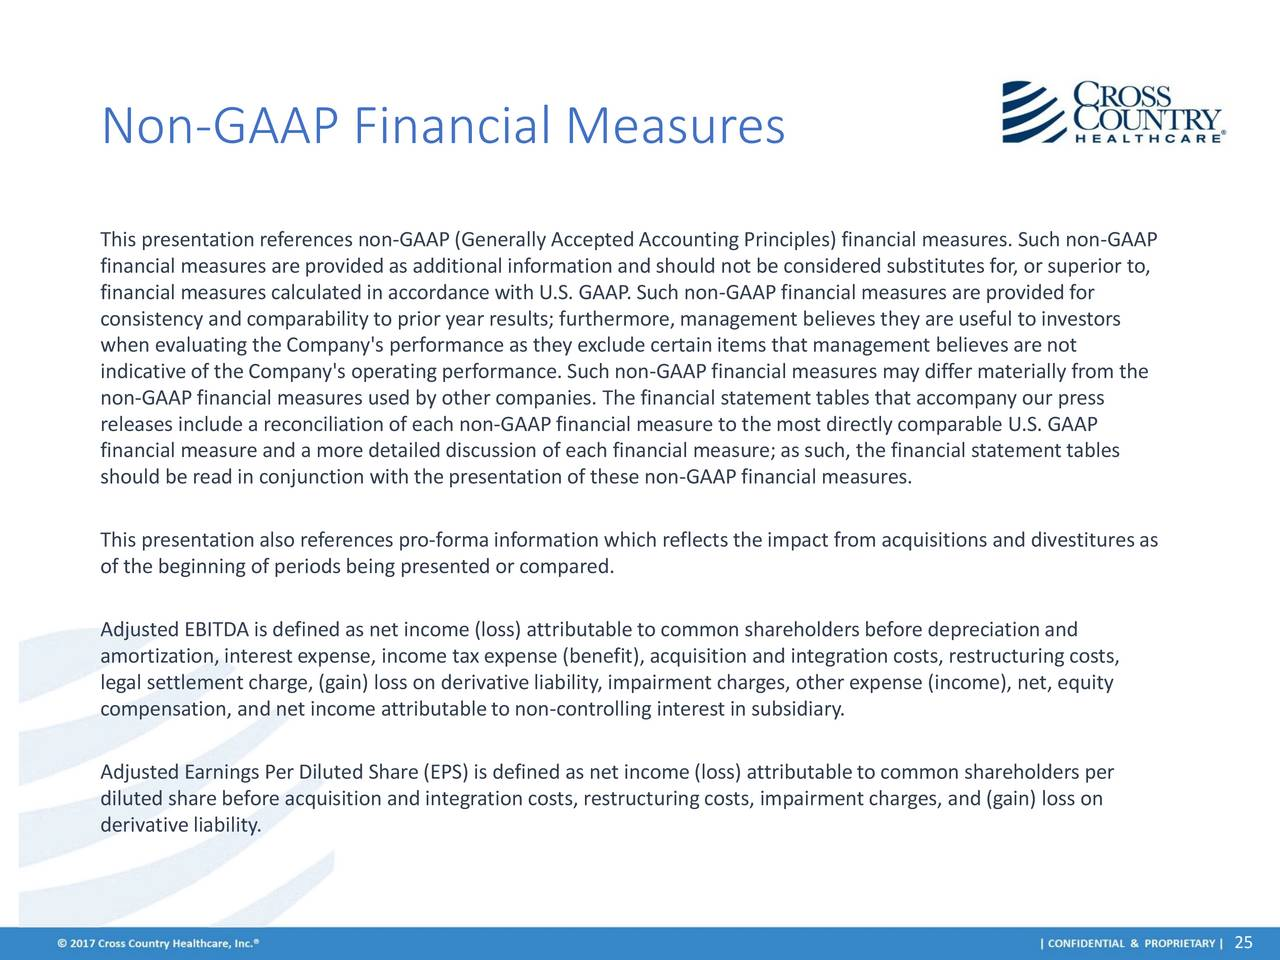 generally accepted accounting principles relating to health care Generally accepted accounting principles (gaap or us gaap) is the accounting standard adopted by the us securities and exchange commission (sec.